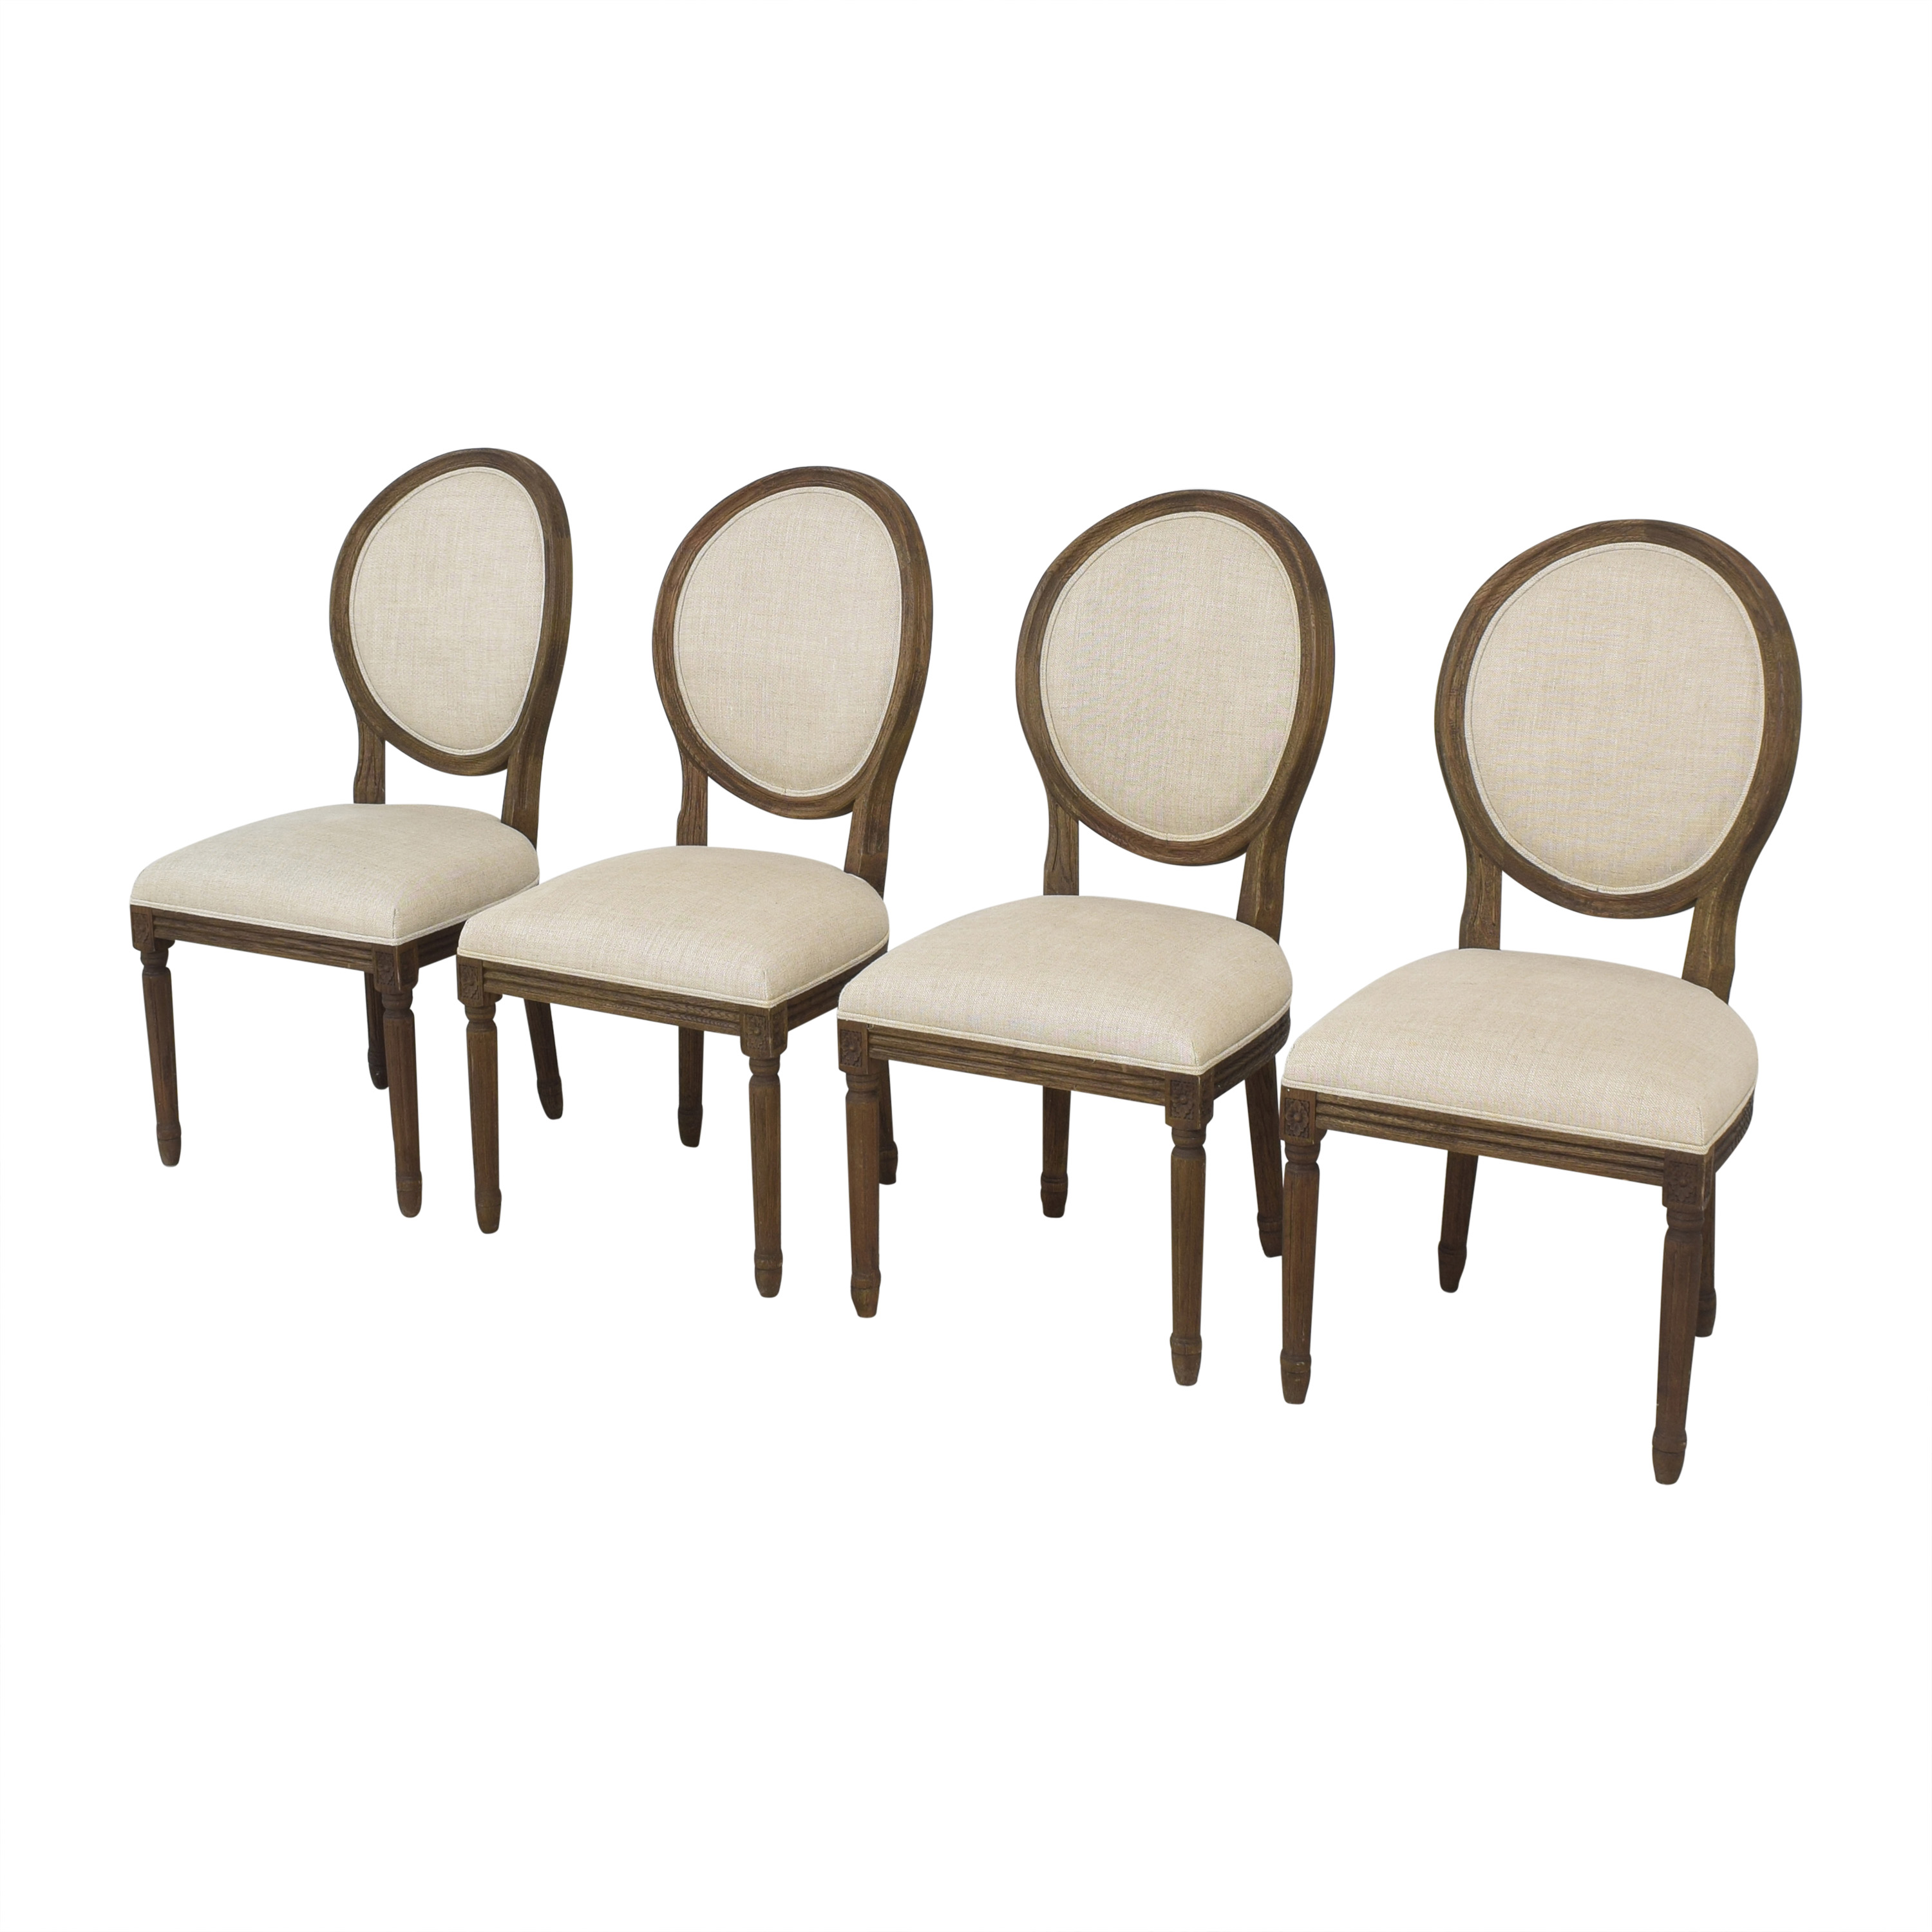 Restoration Hardware Restoration Hardware Vintage French Round Dining Side Chairs discount